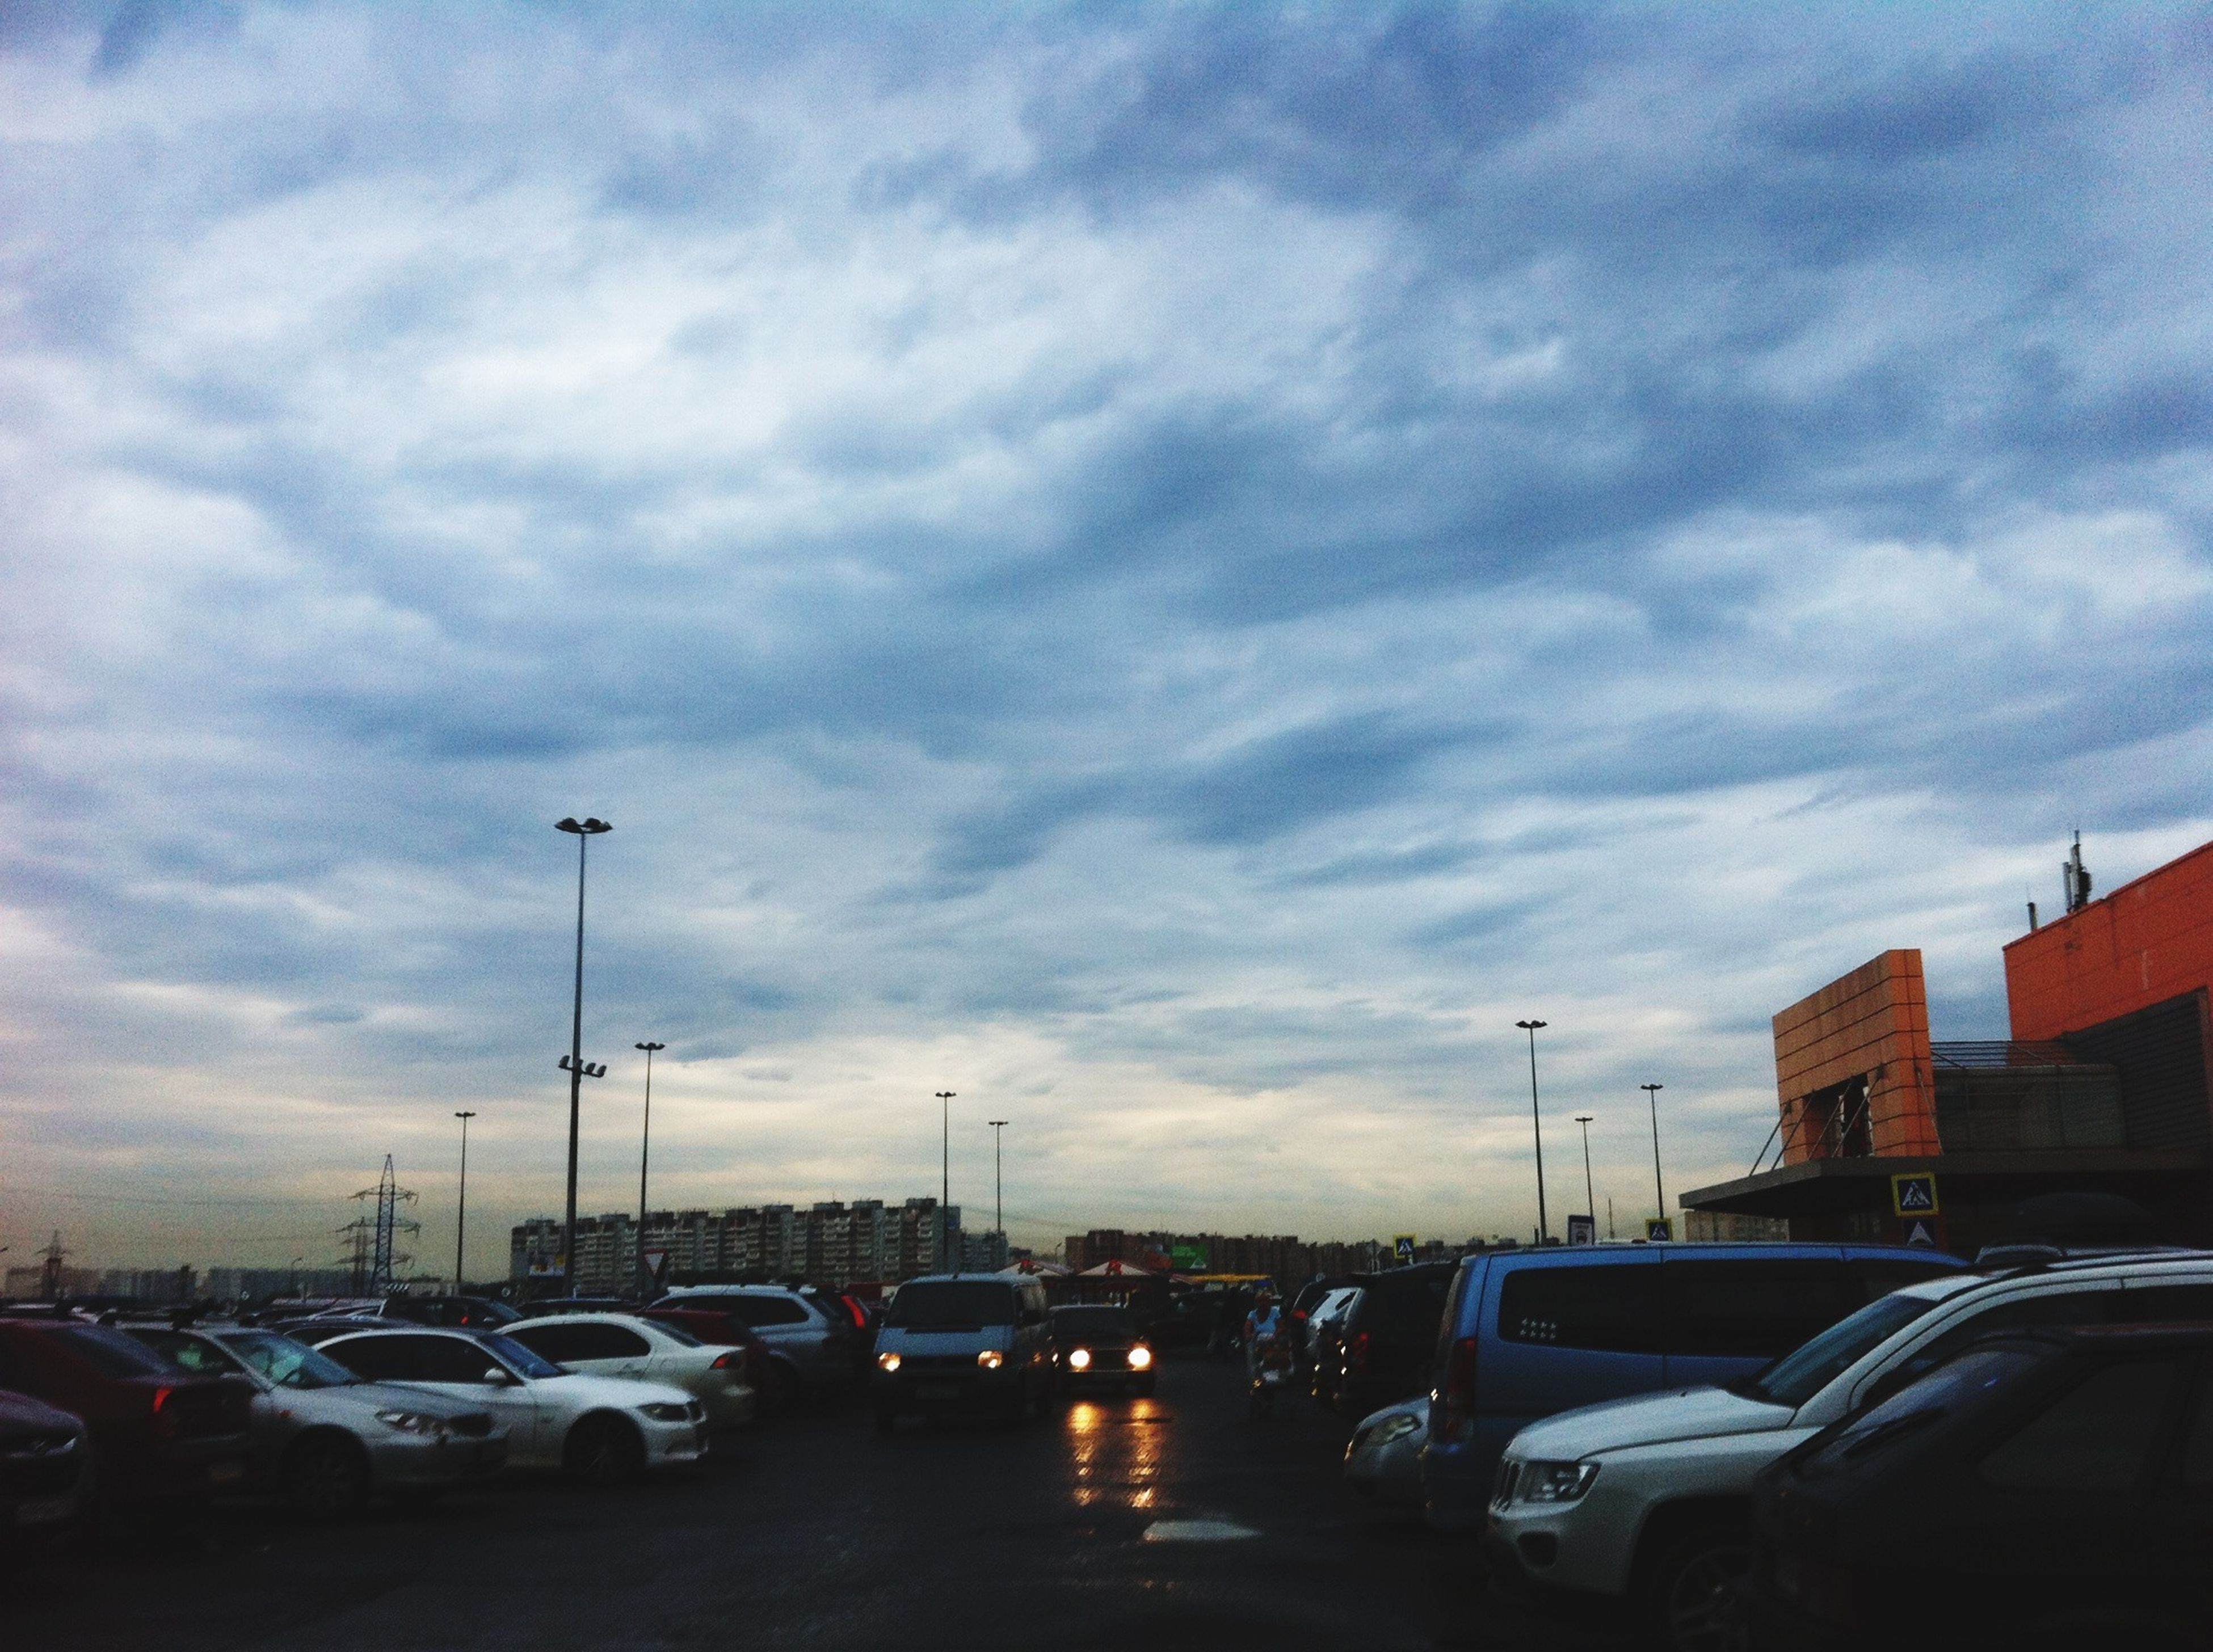 transportation, car, land vehicle, mode of transport, sky, street, road, cloud - sky, stationary, parking, parking lot, cloudy, building exterior, on the move, traffic, parked, city, street light, architecture, built structure